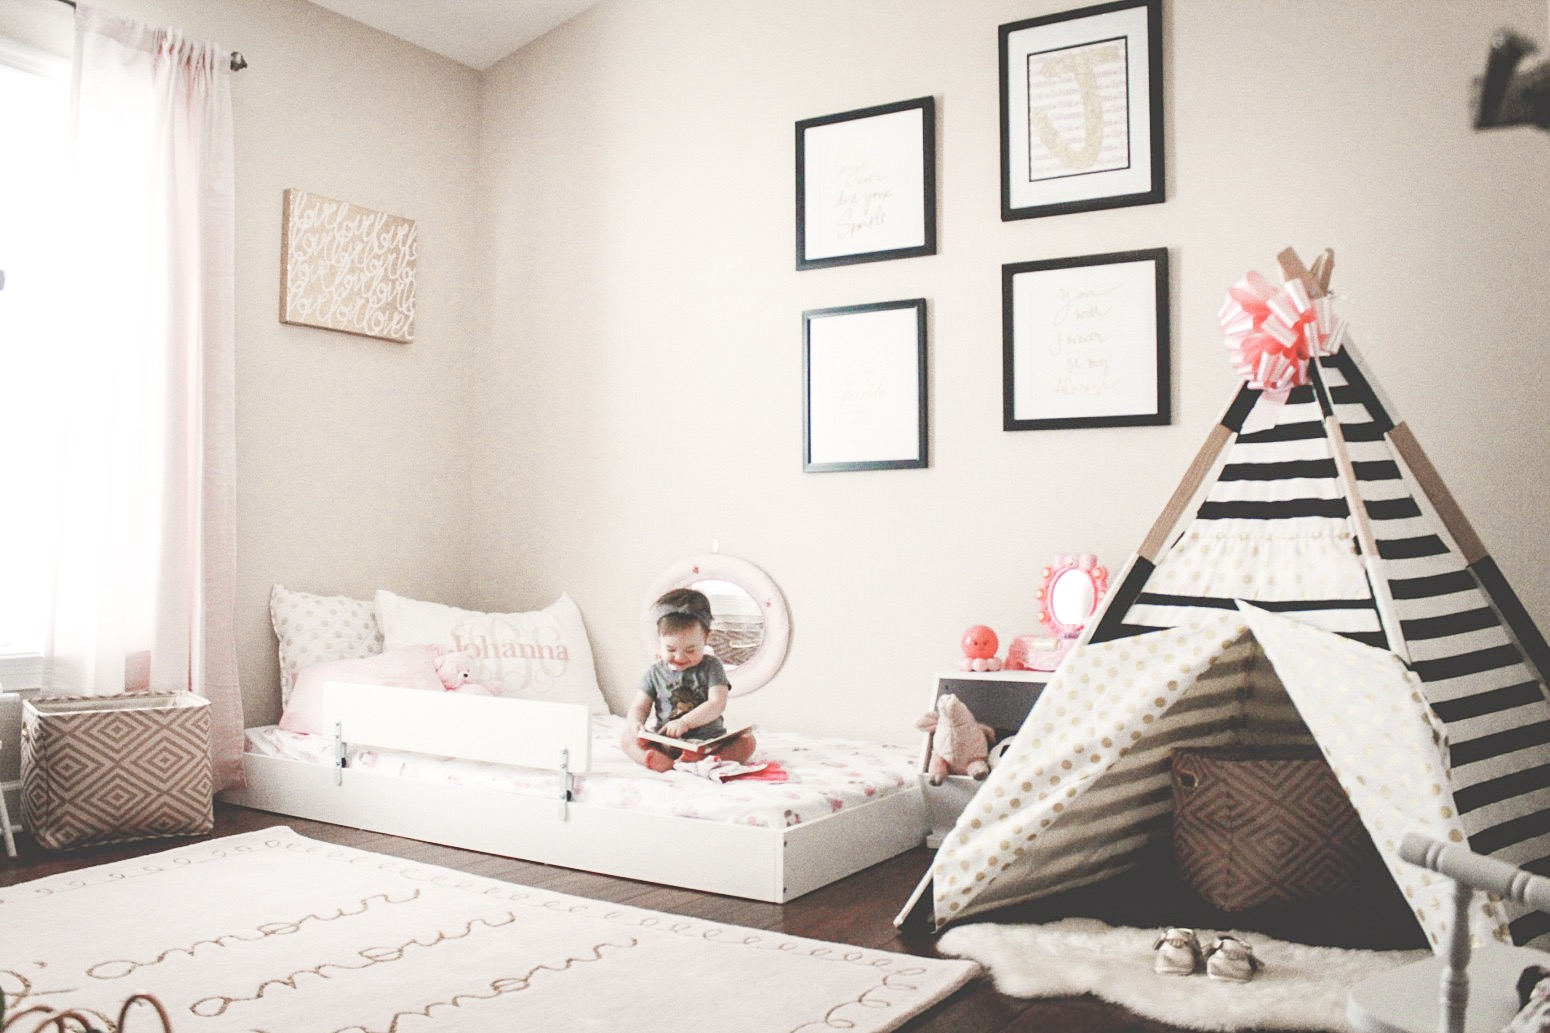 Toddler Room with Floor Beds